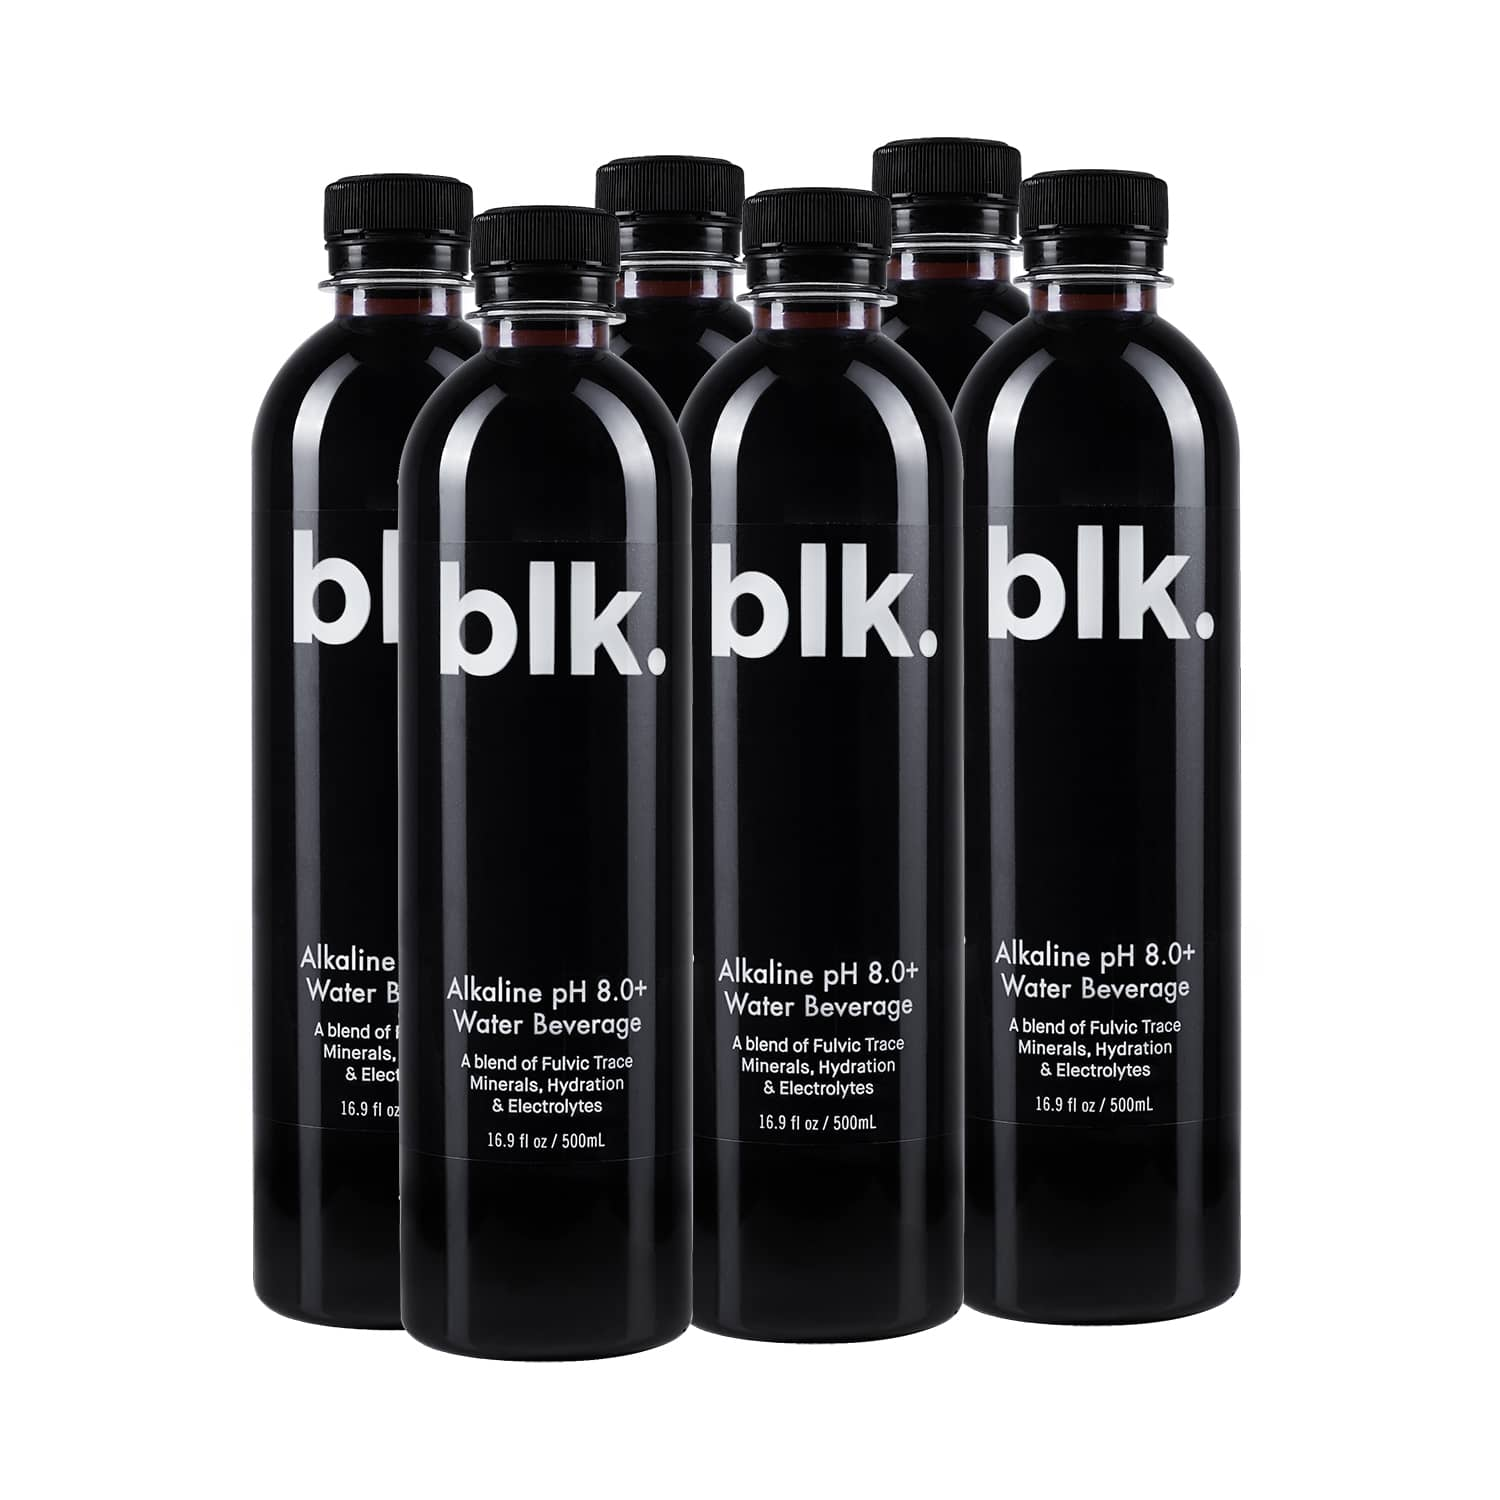 SIX PACK - blk. Alkaline pH 8.0+ Water Zero Calories - 6pk / 16.9 fl oz / 500ml Bottles